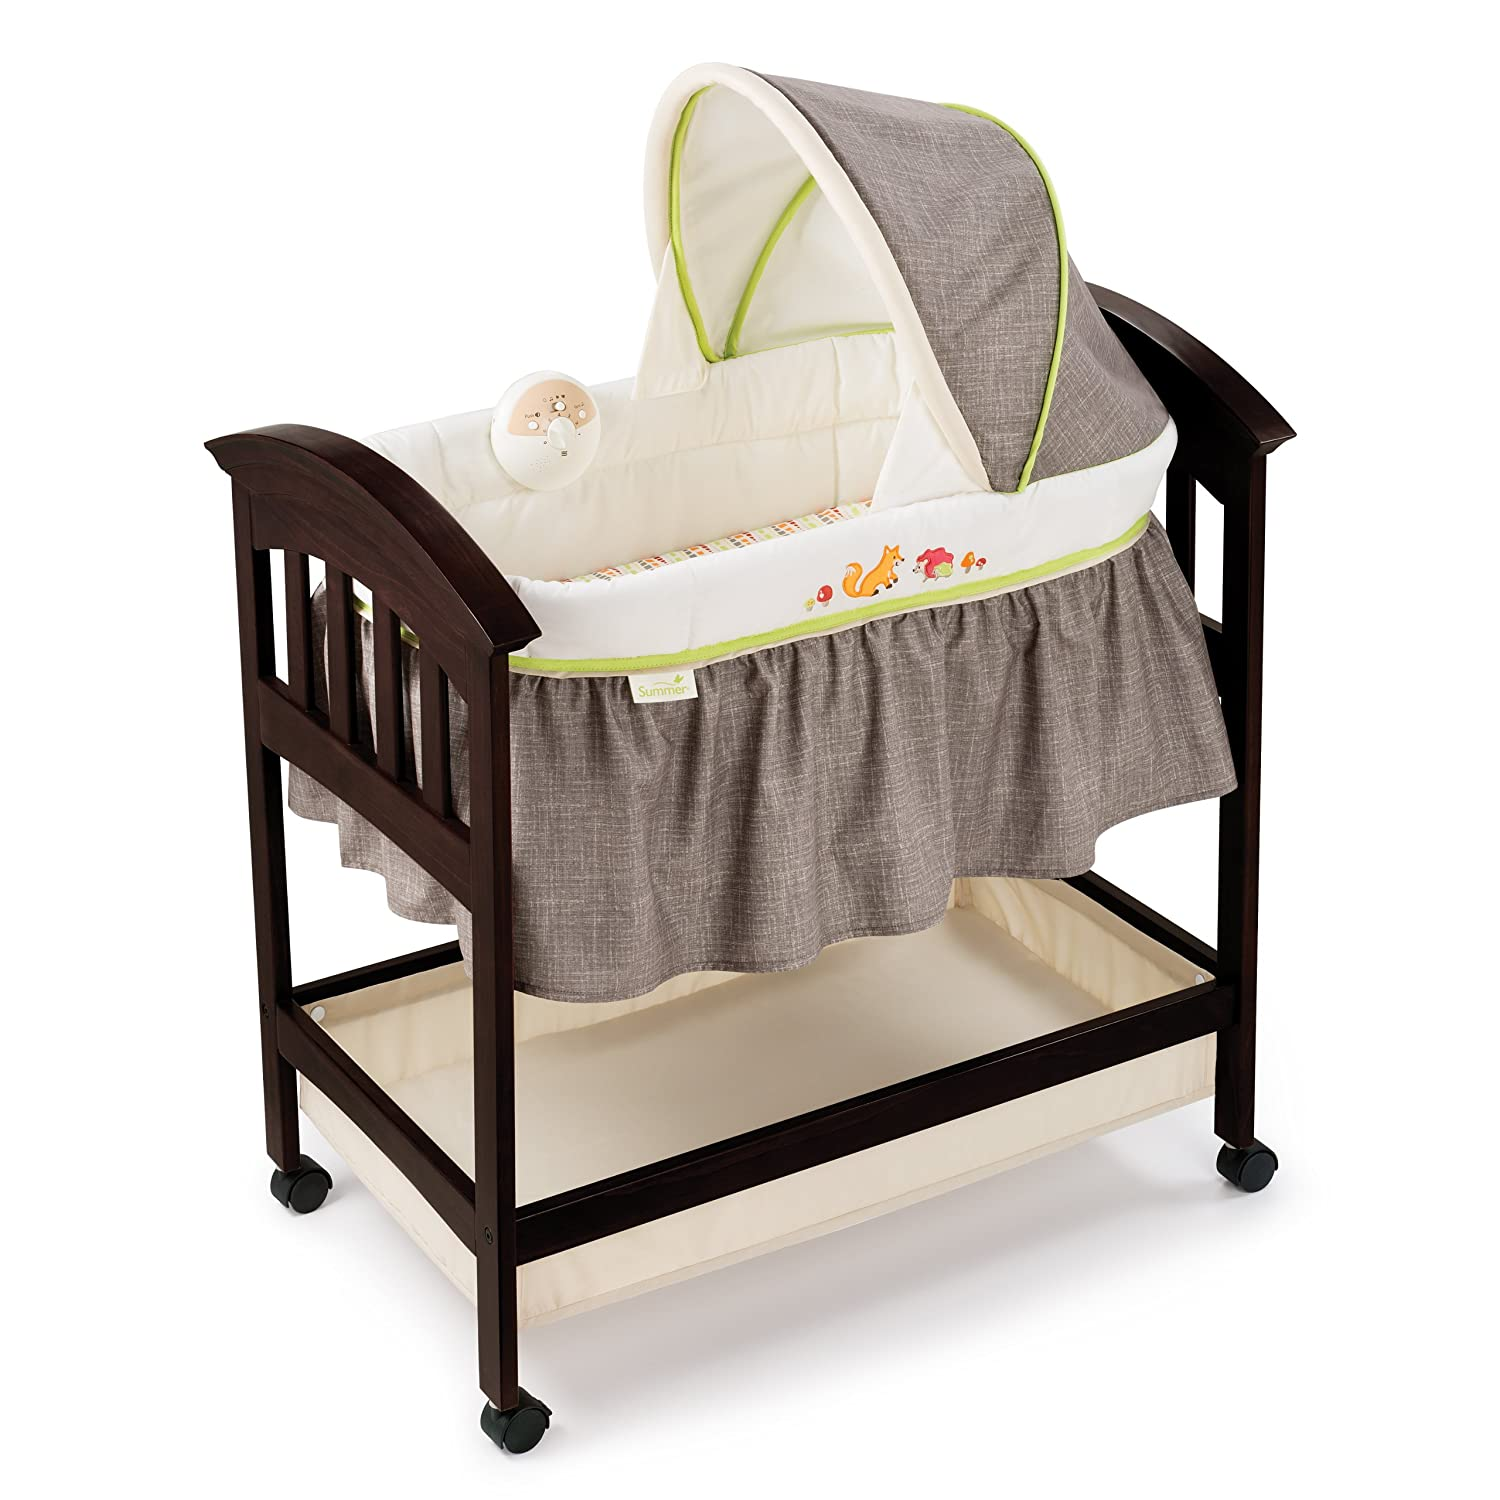 Espresso crib for sale - Amazon Com Summer Infant Classic Comfort Wood Bassinet Fox And Friends Espresso Stain Baby